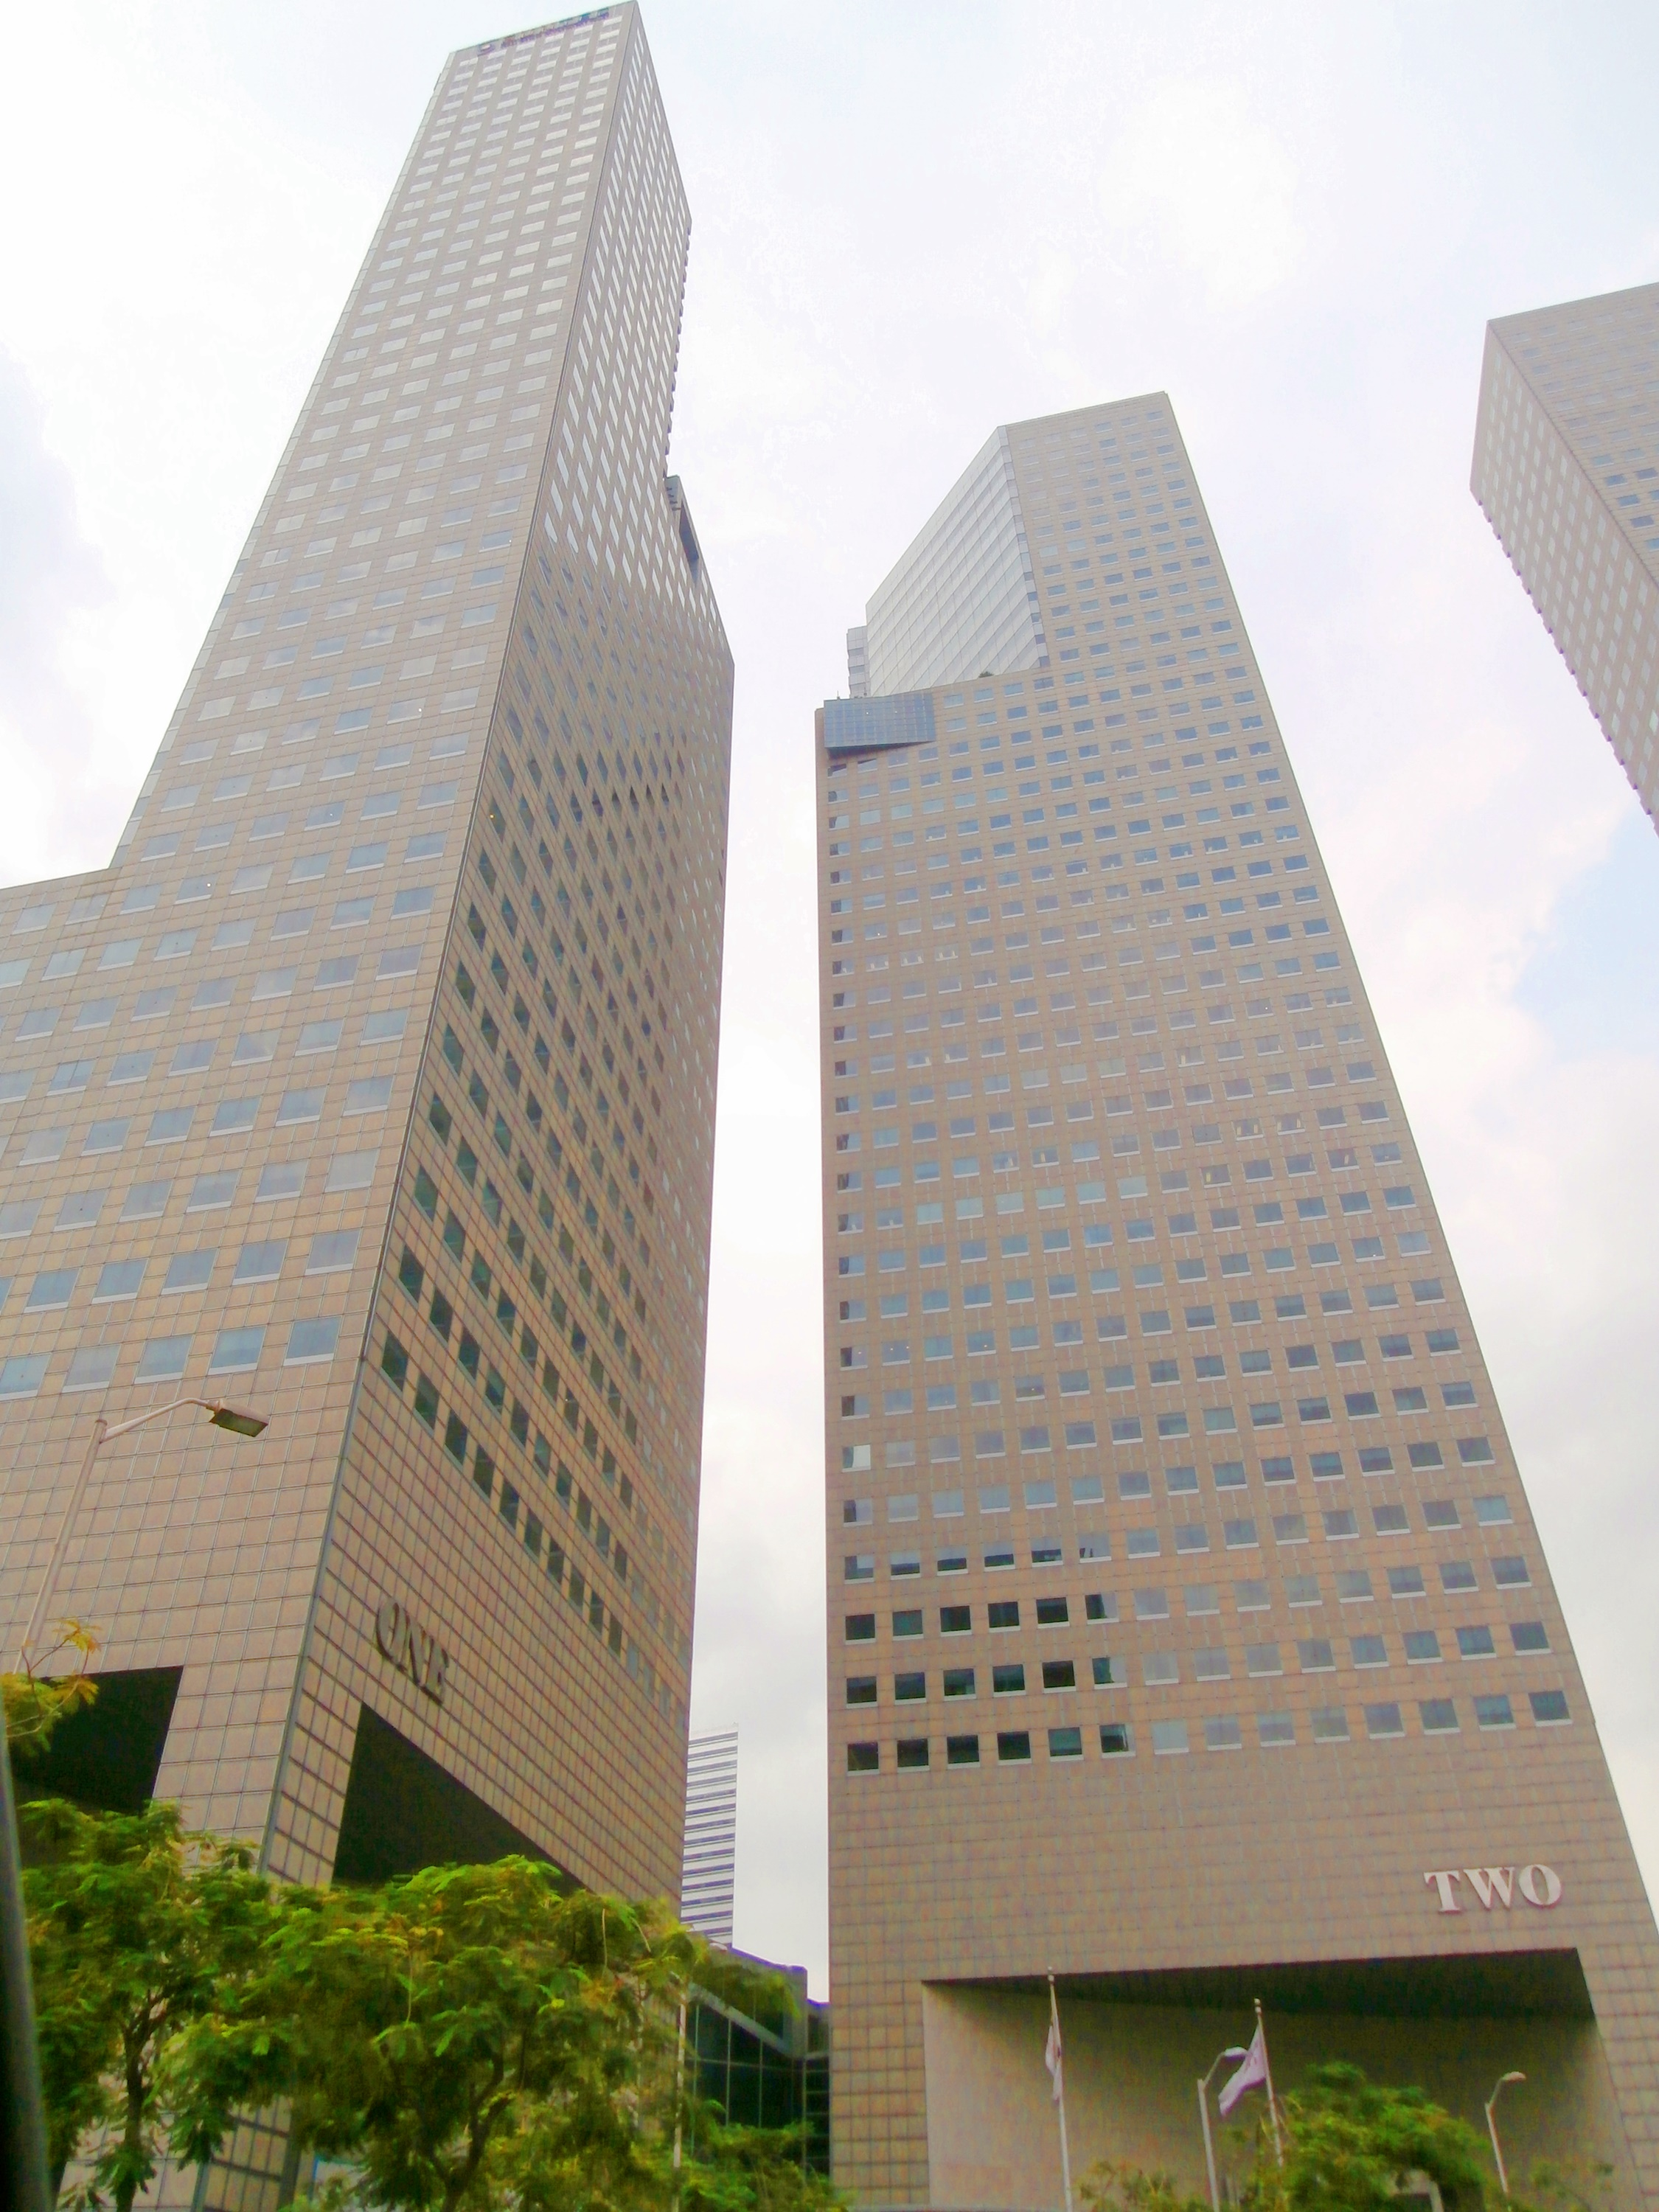 EDGEPROP SINGAPORE -  Suntec Tower 1 and 2 (Credit: Knight Frank)